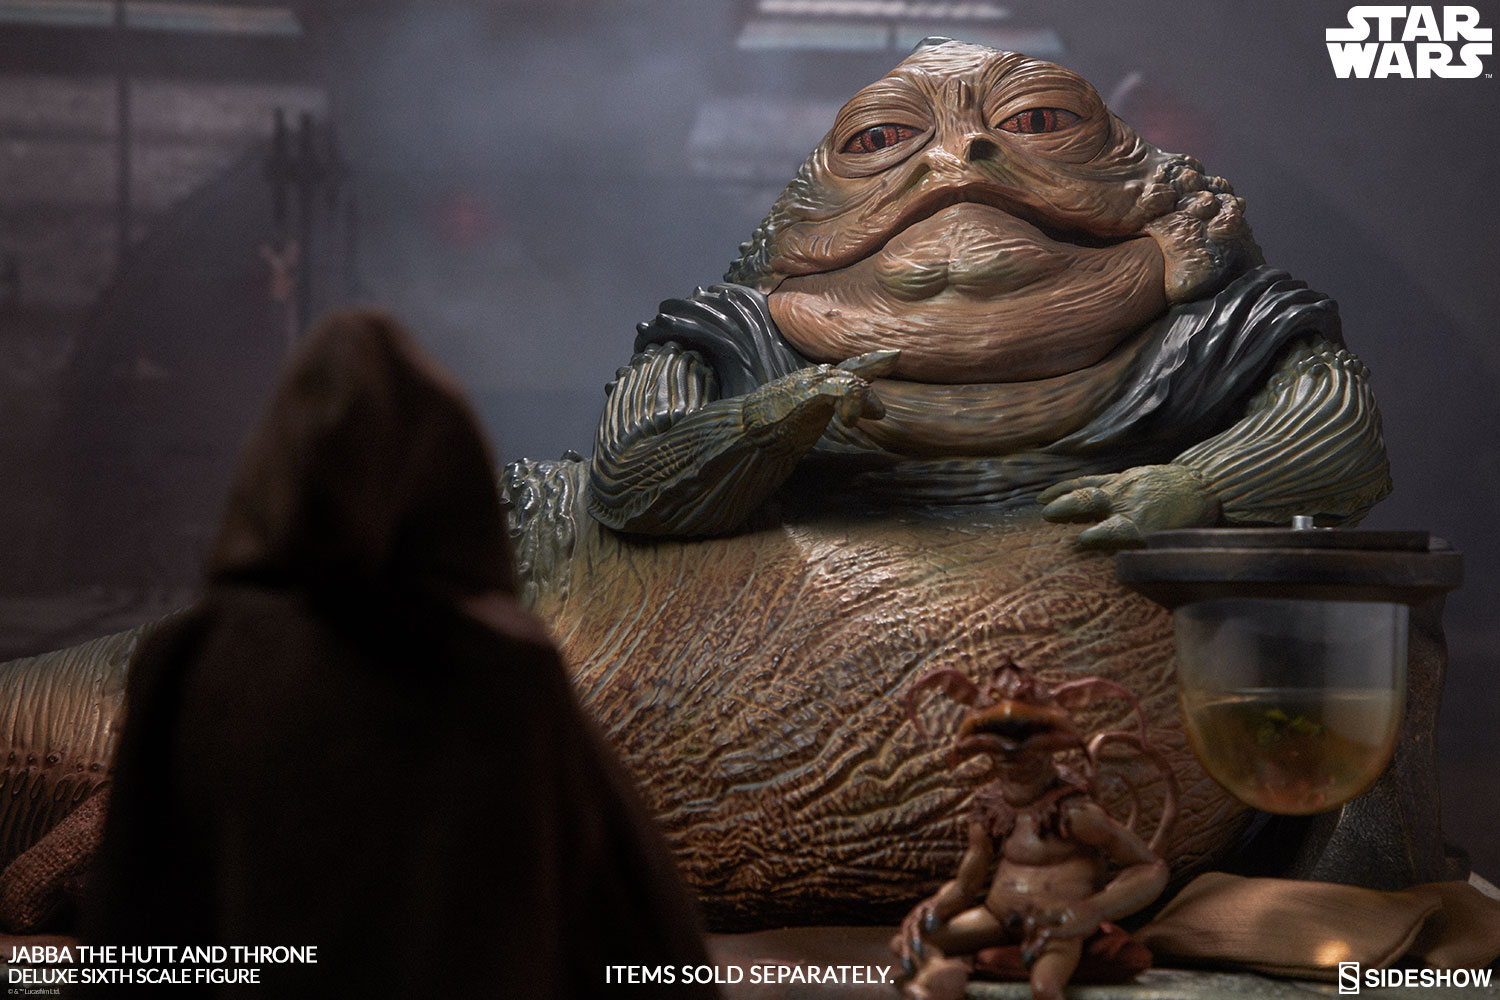 Star Wars Jabba The Hutt And Throne Deluxe Sixth Scale Figur